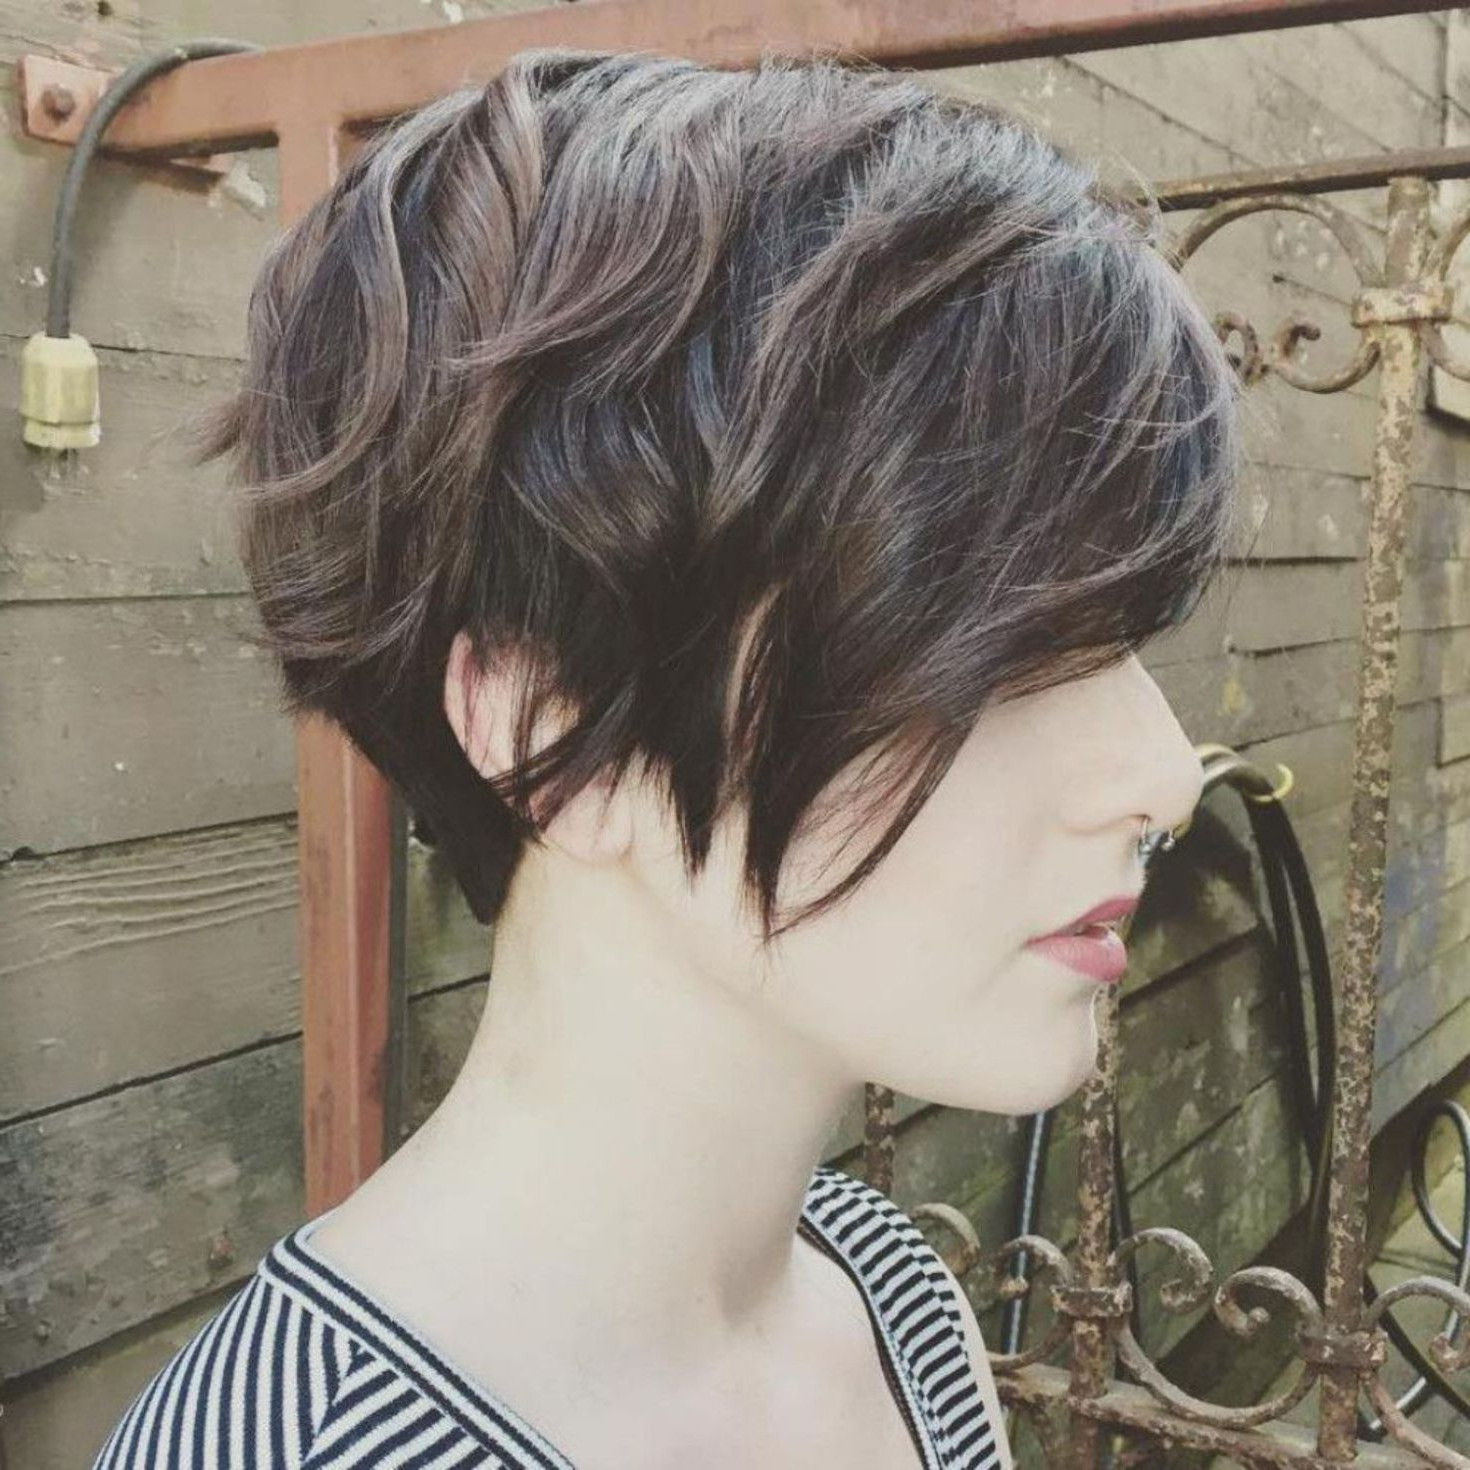 Pin On Hair Ideas 2017 2018 Within Long Pixie Haircuts With Angled Layers (View 4 of 20)